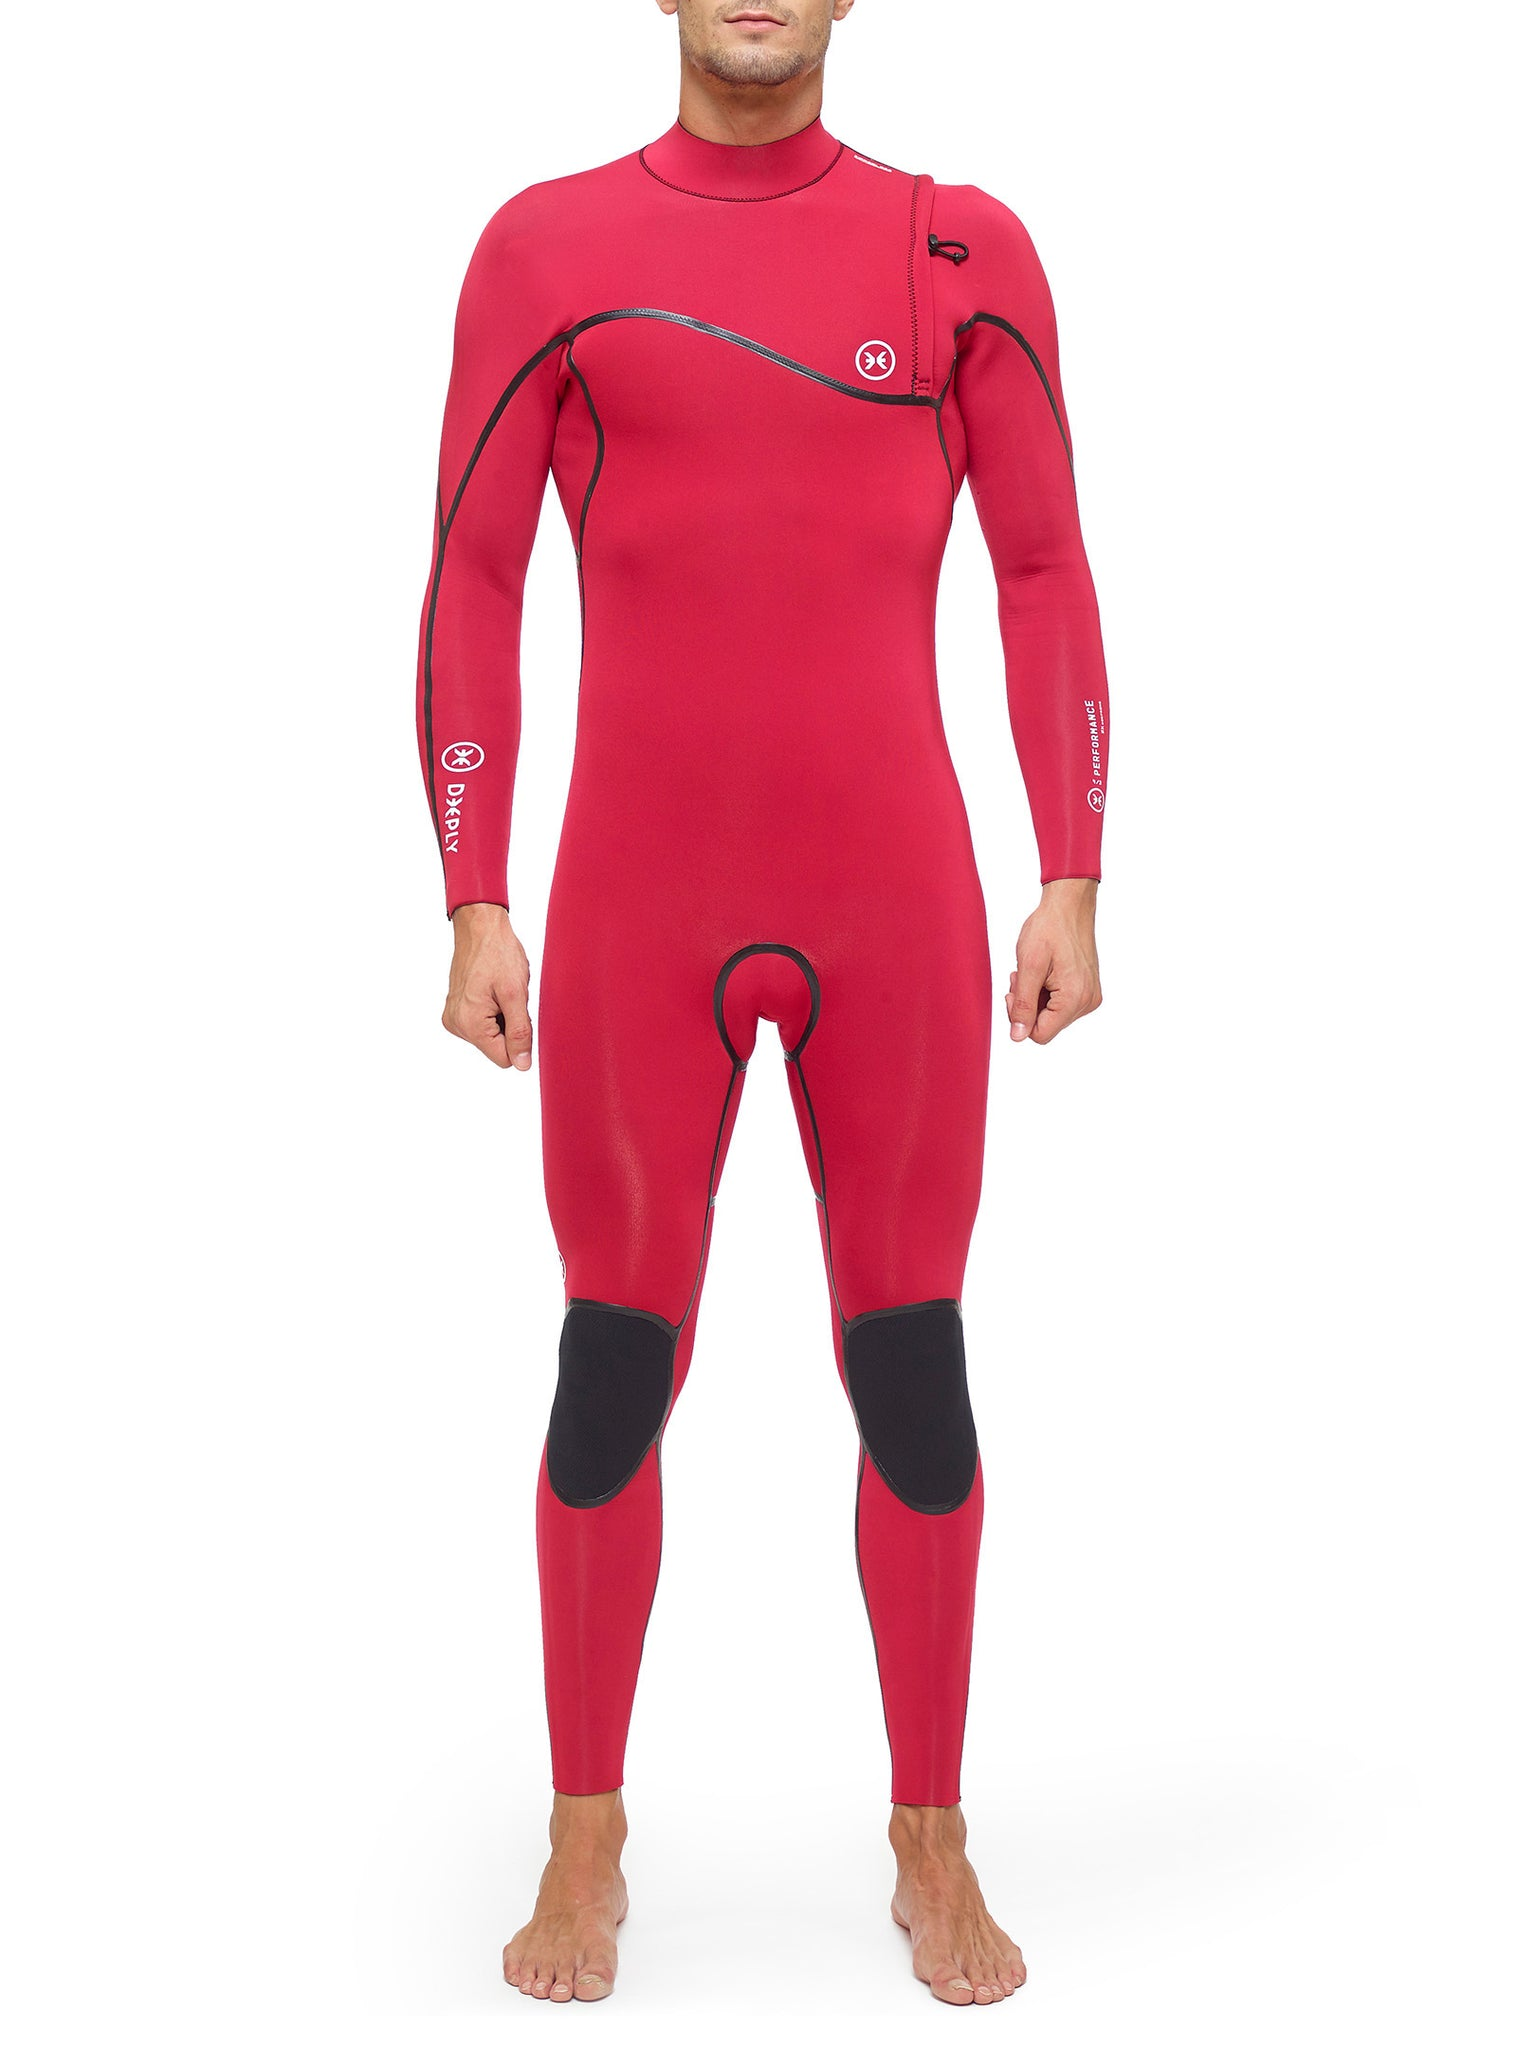 Wetsuit Man Performance 4/3 Zipperless Red